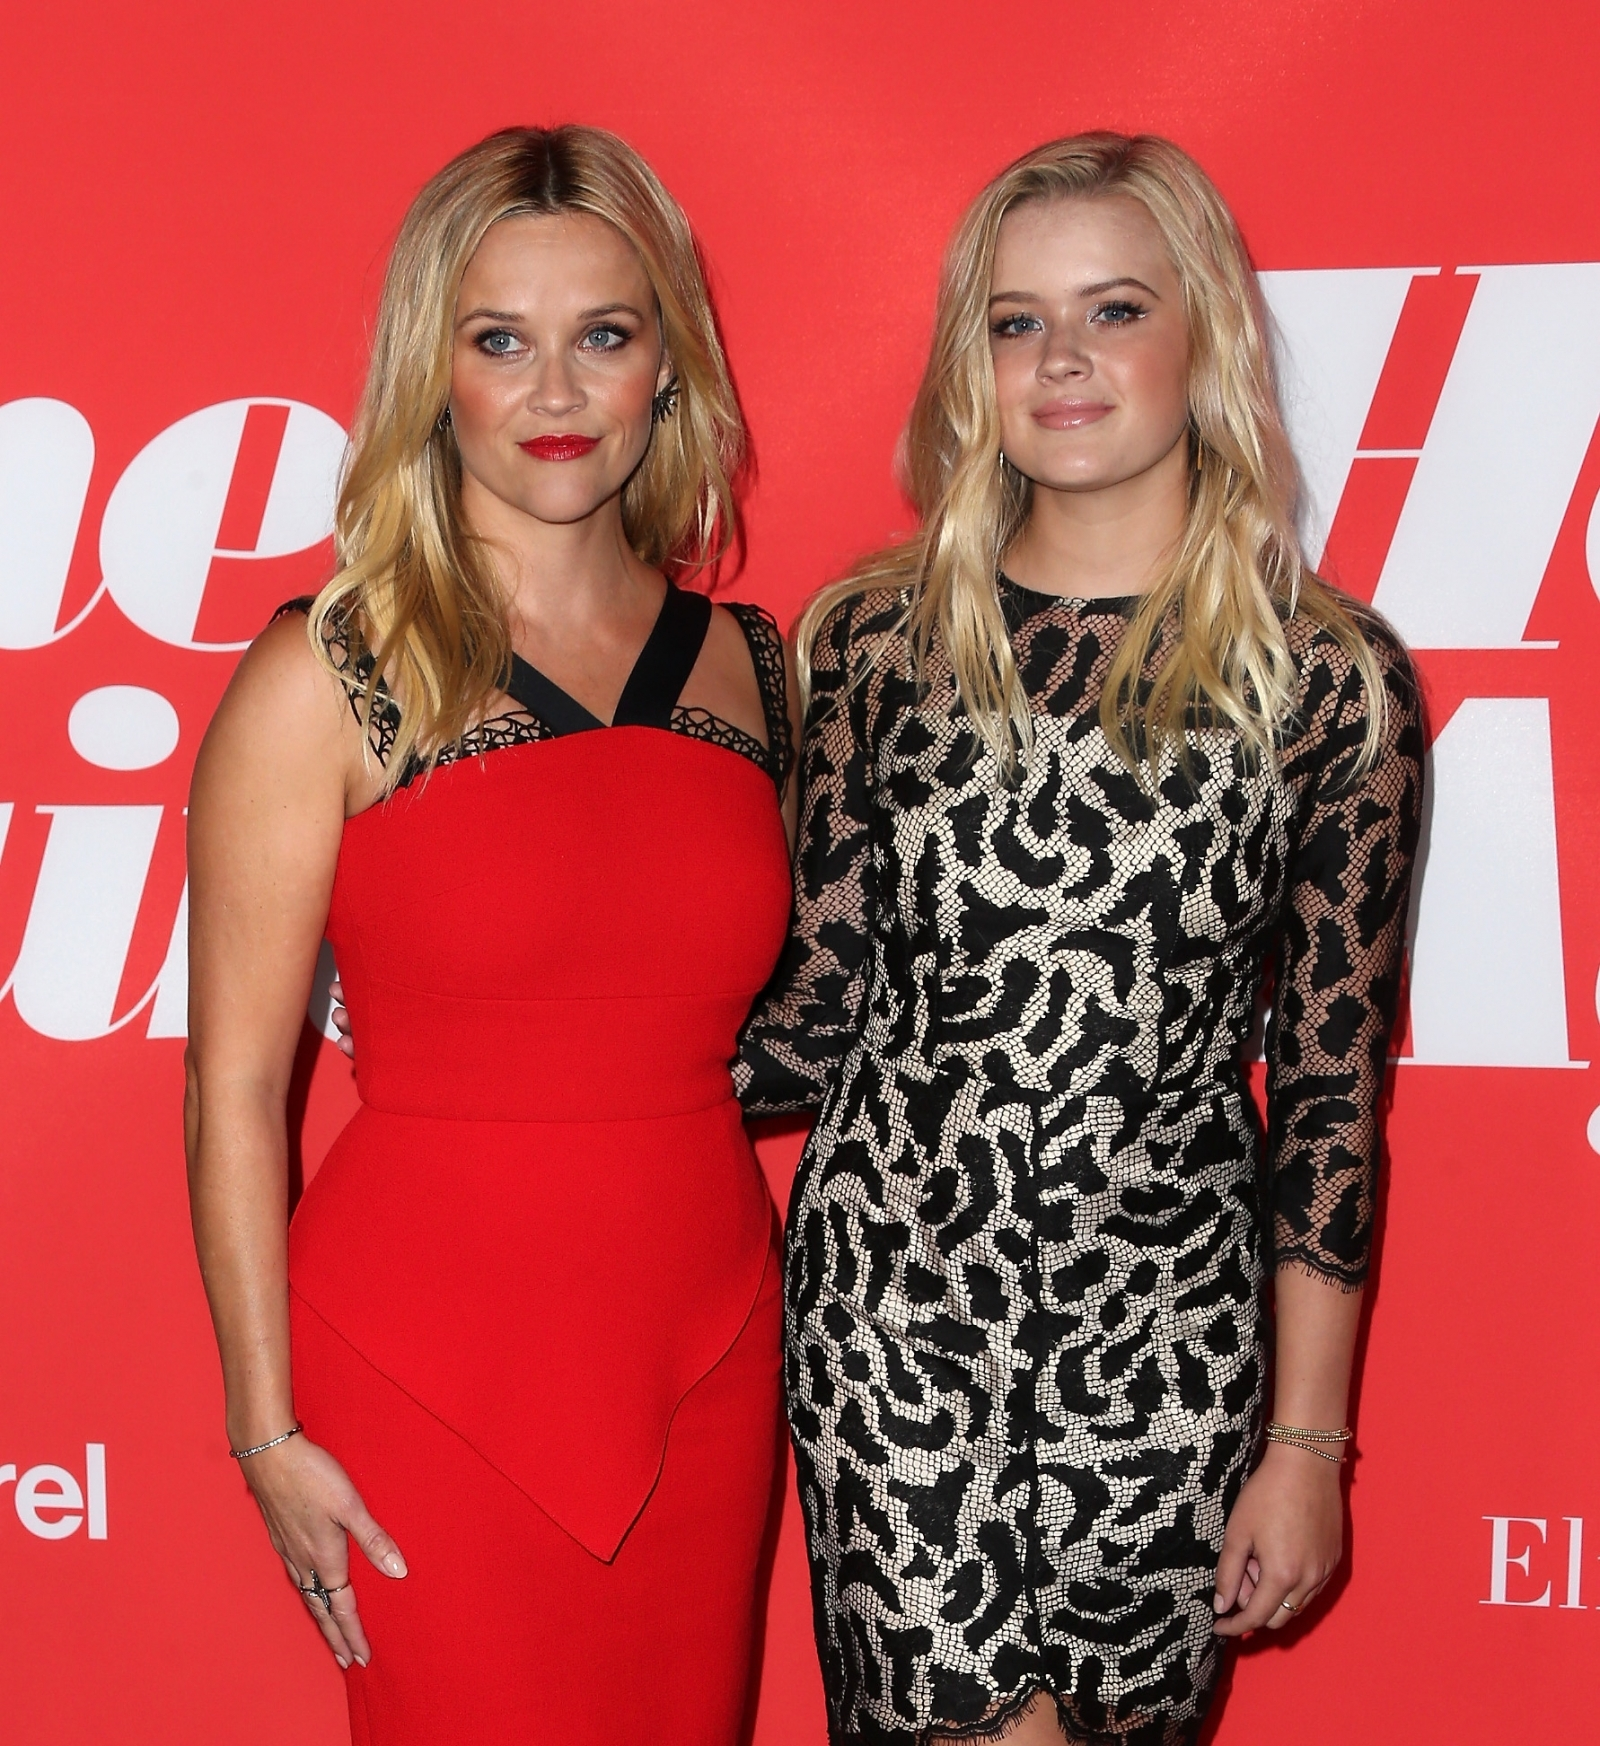 Reese Witherspoon Dishes on Her 'Mindy Project' Cameo